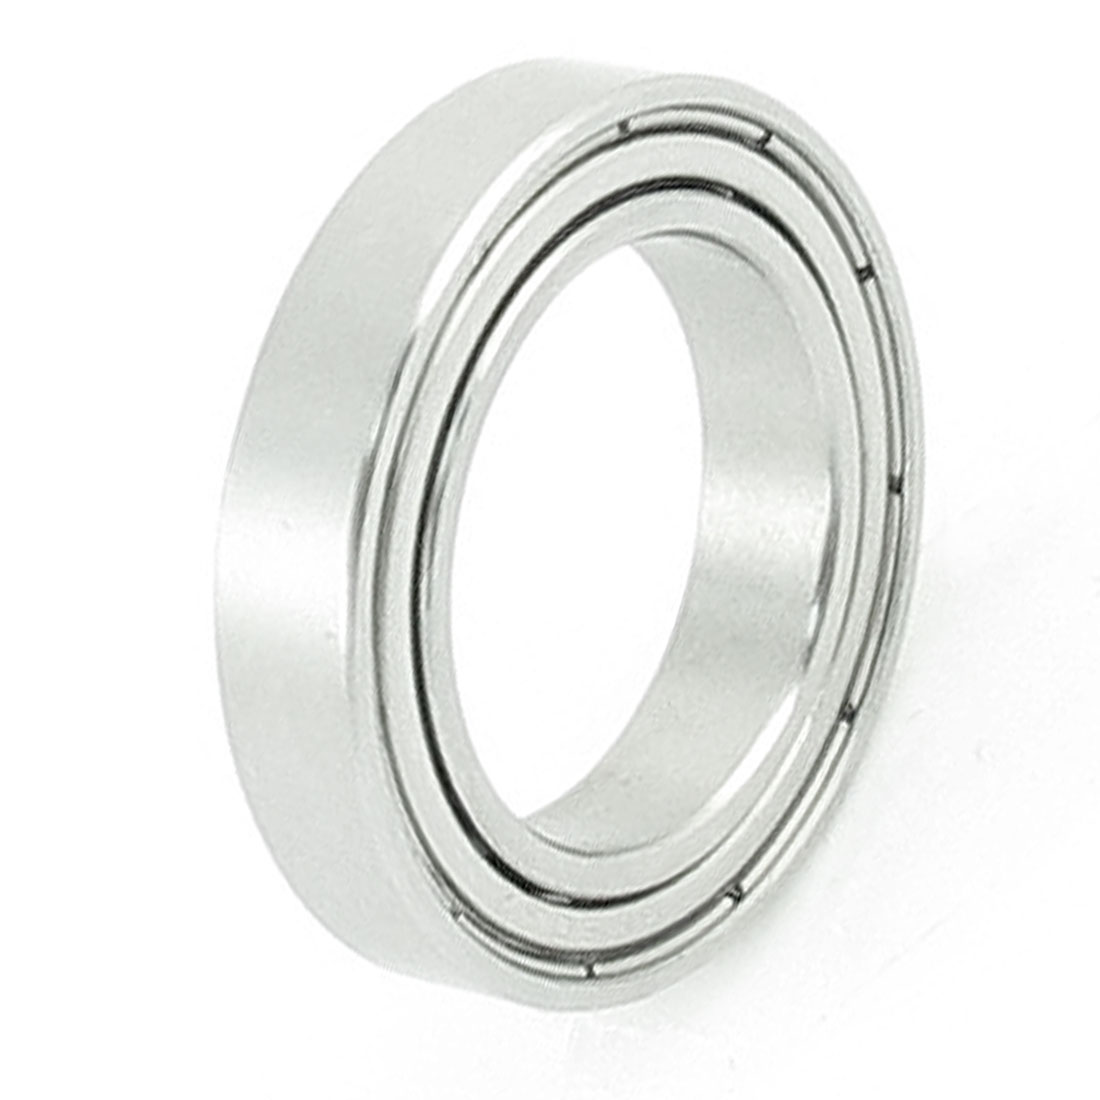 Stainless Steel 26mm x 17mm x 5mm Sealed Deep Groove Ball Bearing